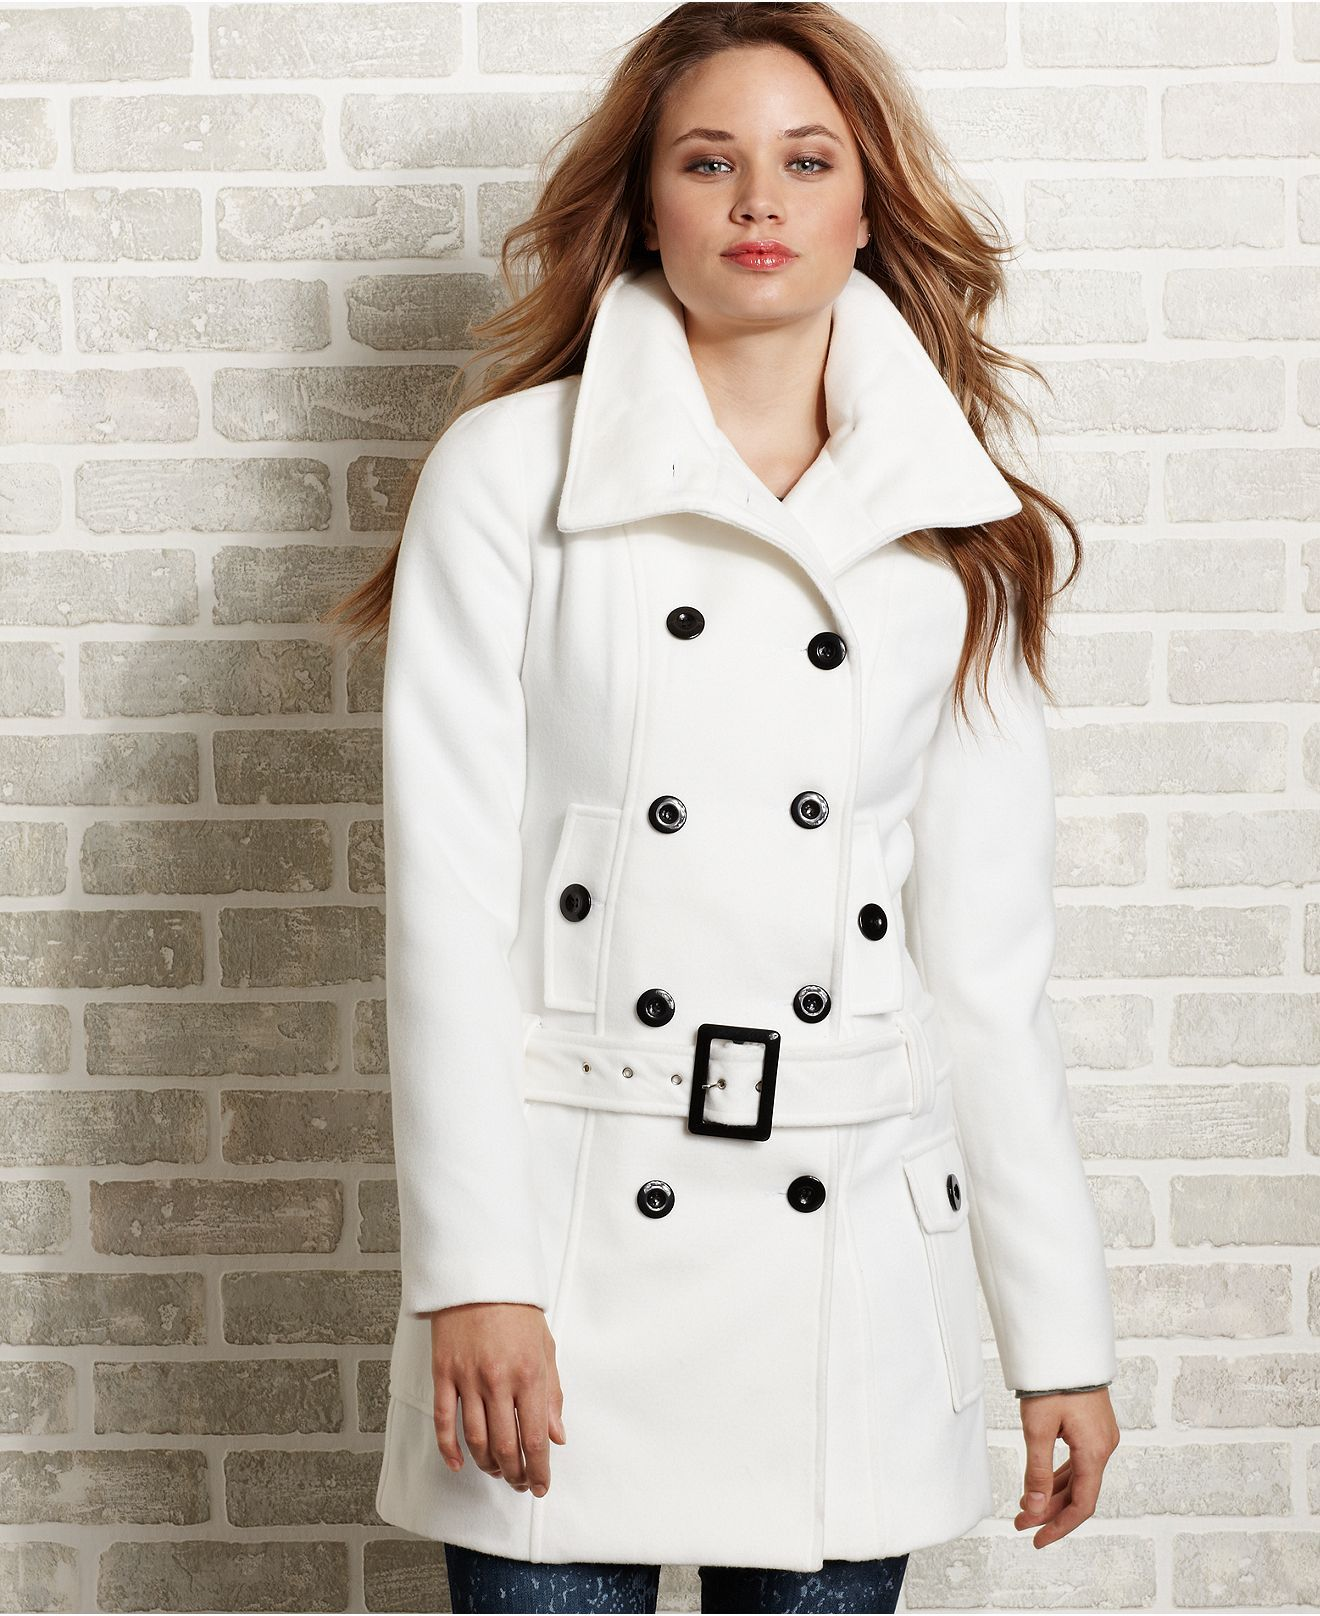 Pin By Joanie Bakke On My Style Junior Coats Coat Clothes [ 1616 x 1320 Pixel ]